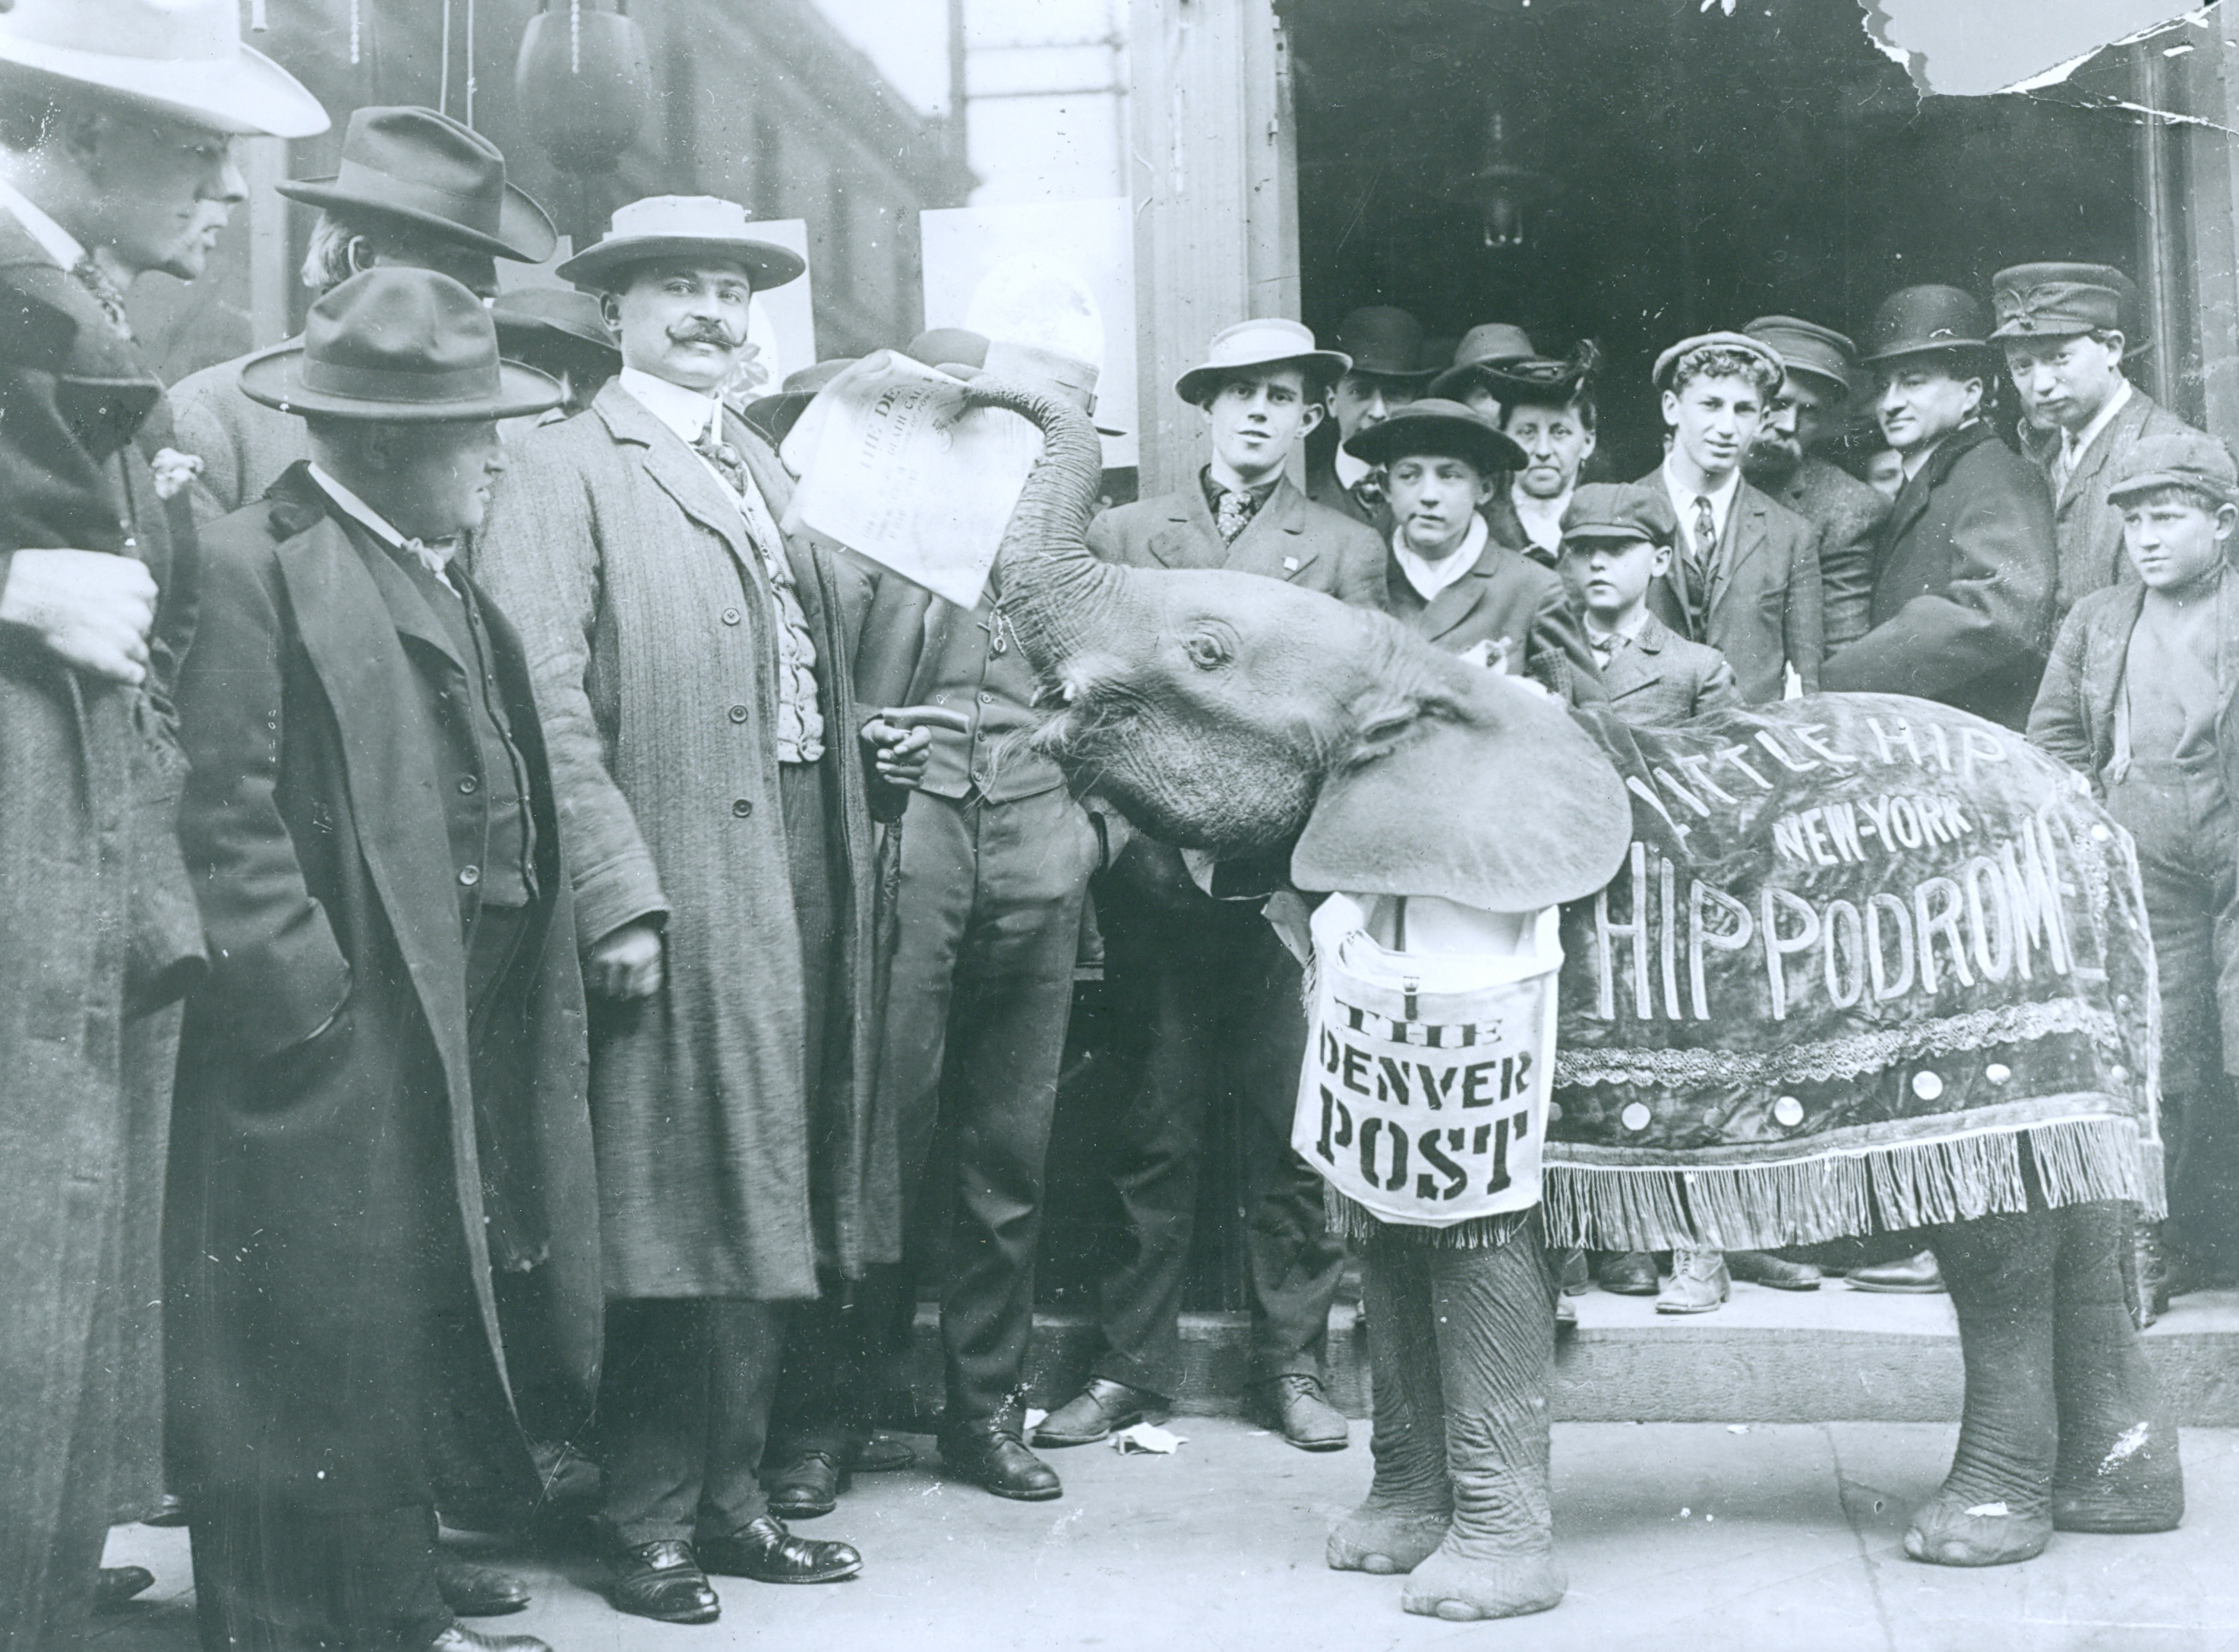 Denver Post elephant paper seller 1920